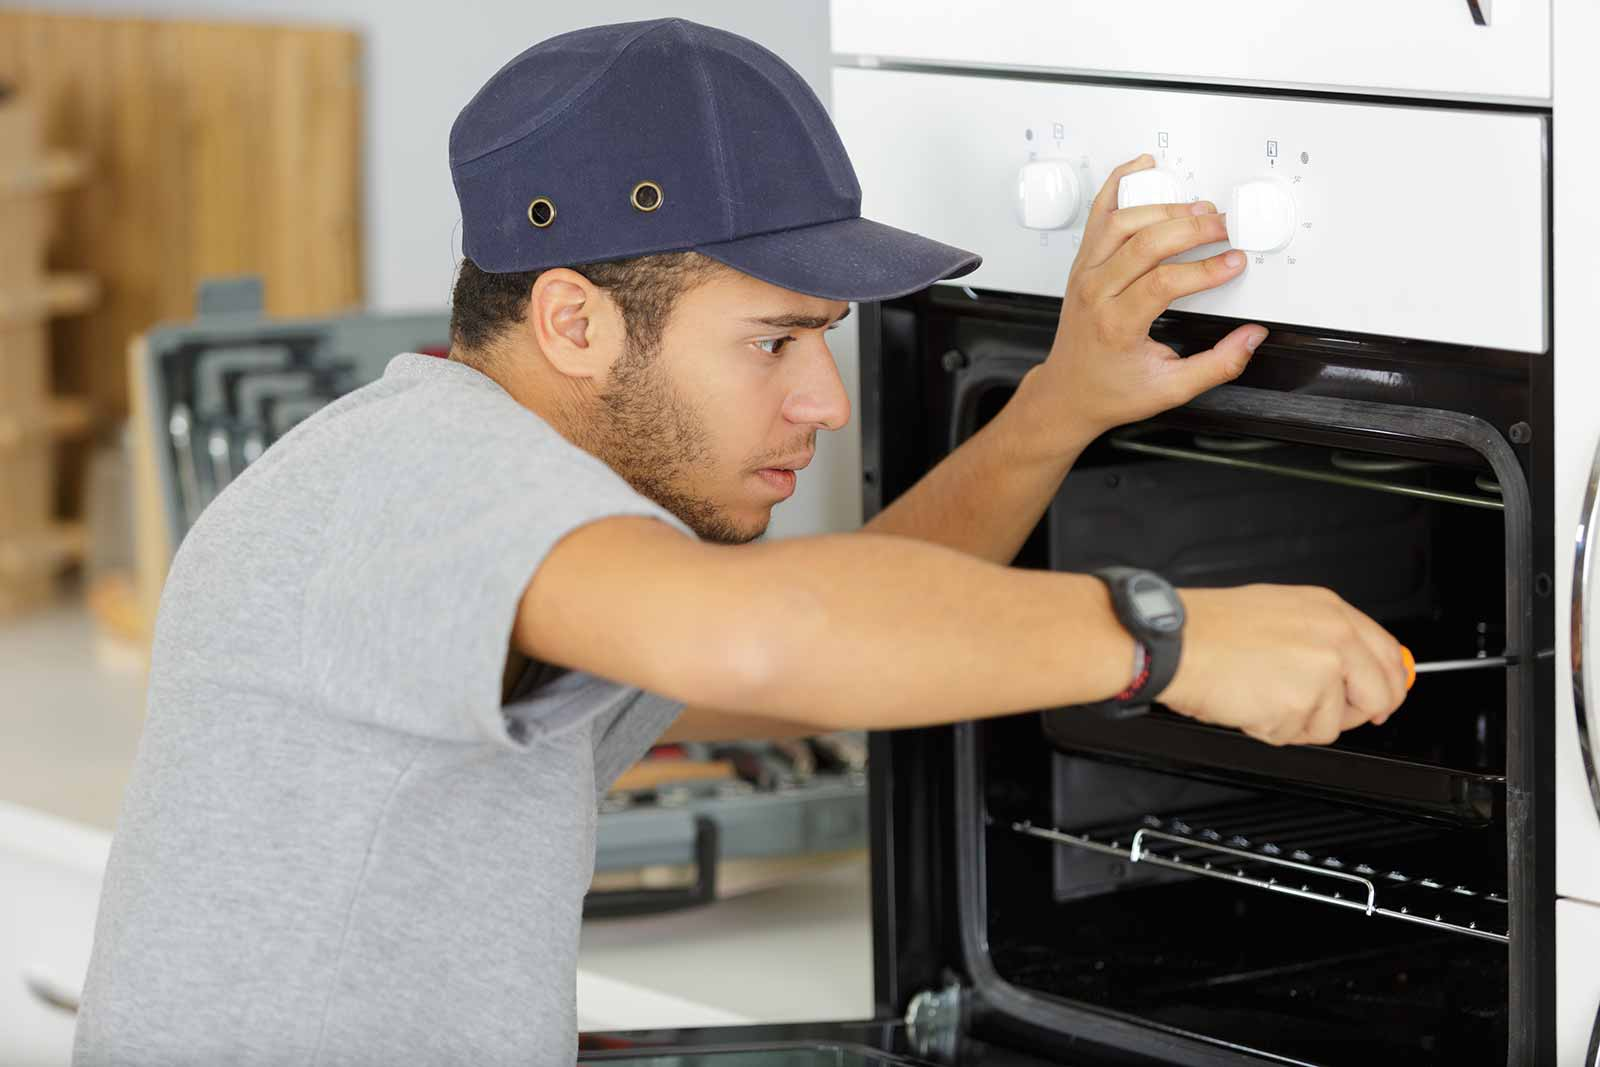 Fixing an oven under home warranty coverage